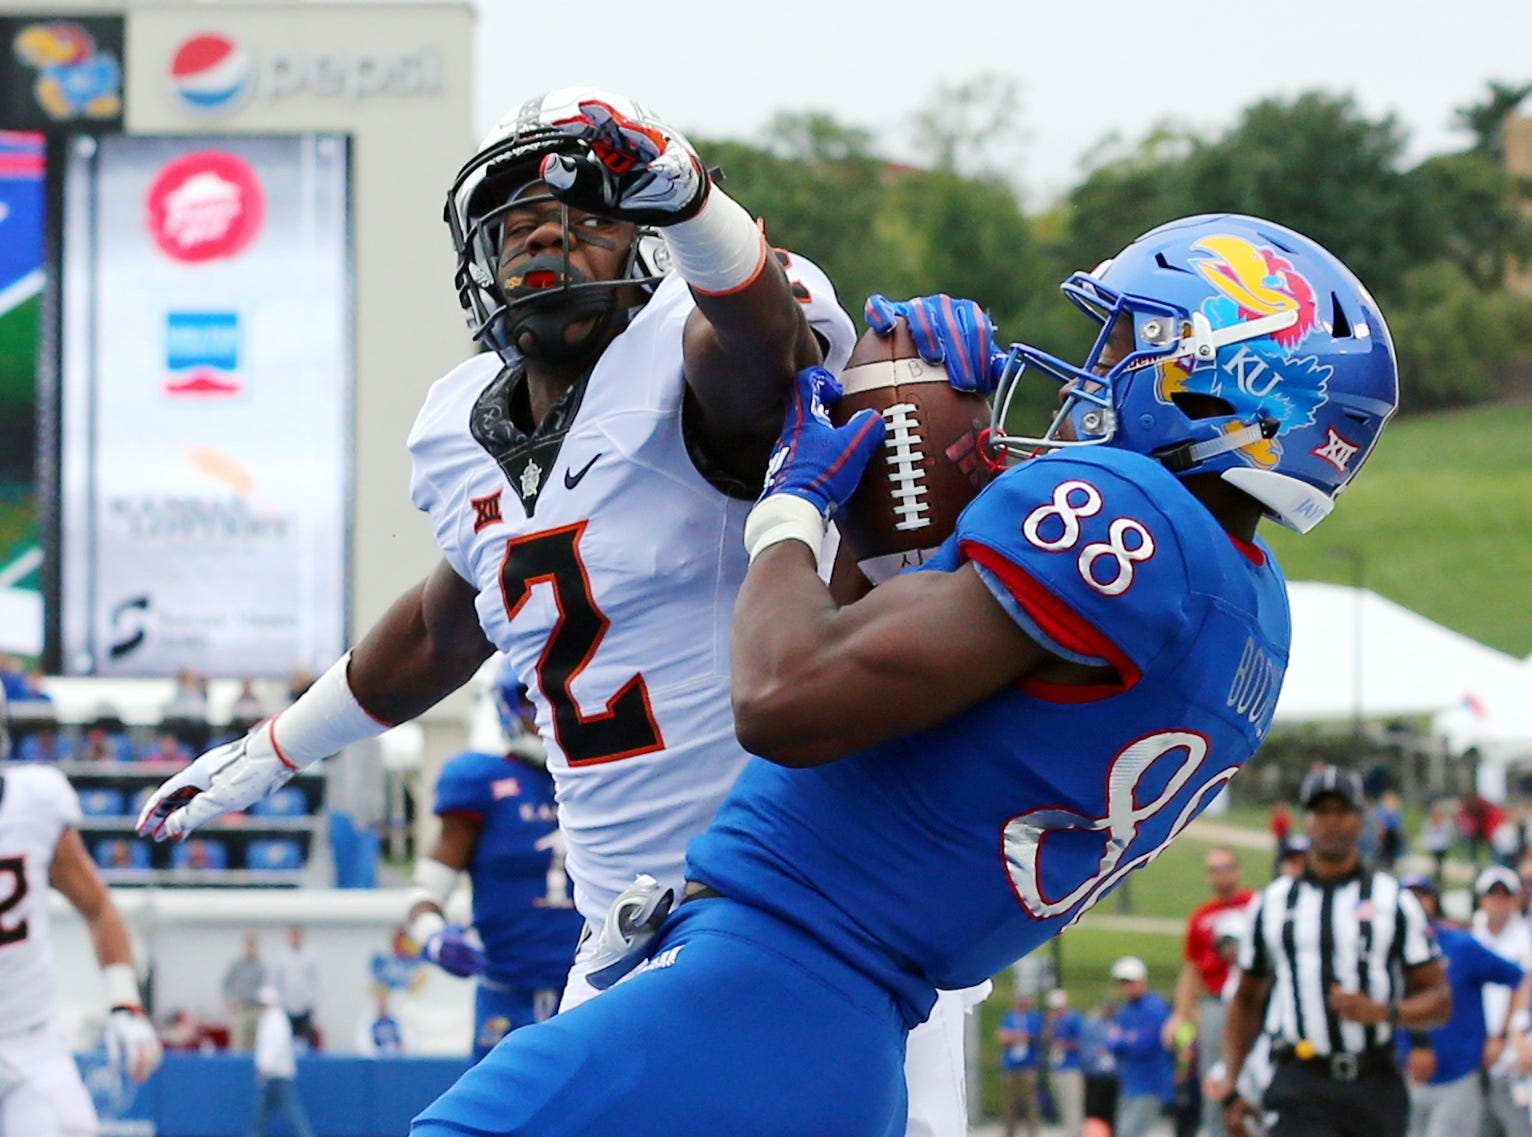 Kansas Jayhawks wide receiver Jeremiah Booker (88) catches a touchdown pass as Oklahoma State Cowboys cornerback Tanner McCalister (2) defends in the second half at Memorial Stadium.